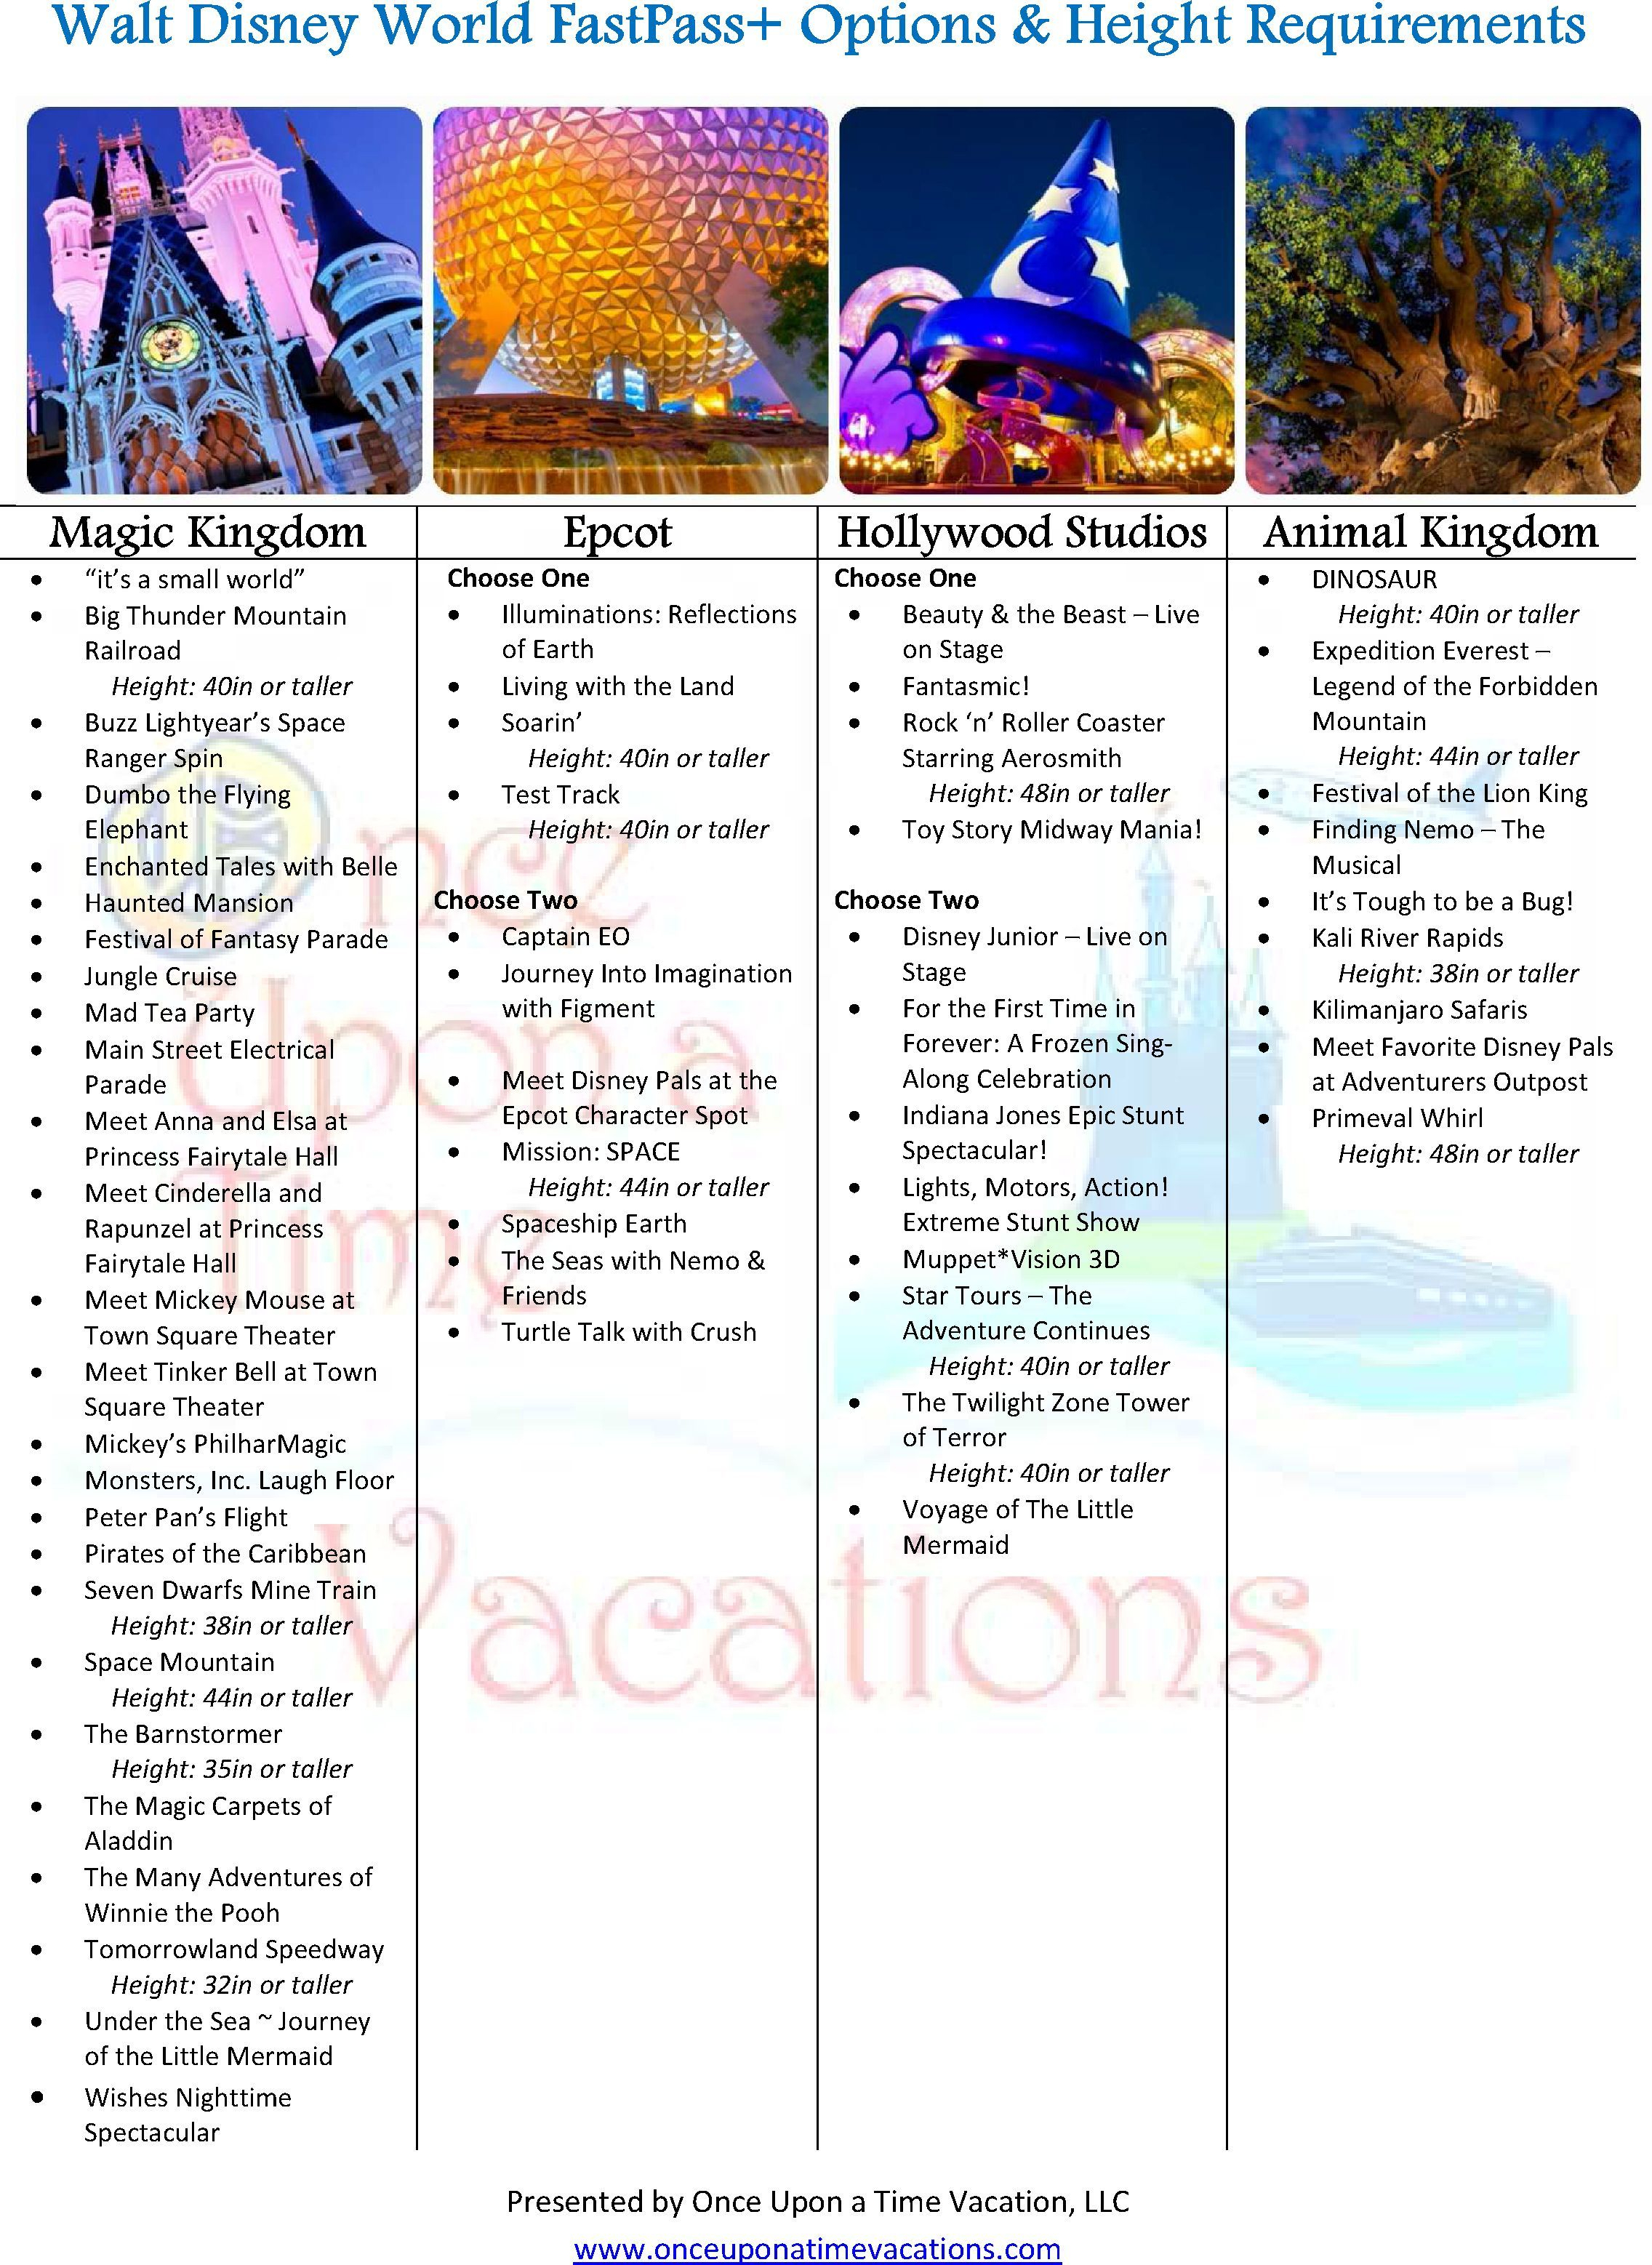 Walt Disney World 101 ~ Fastpass+ Tiers And Recommendations